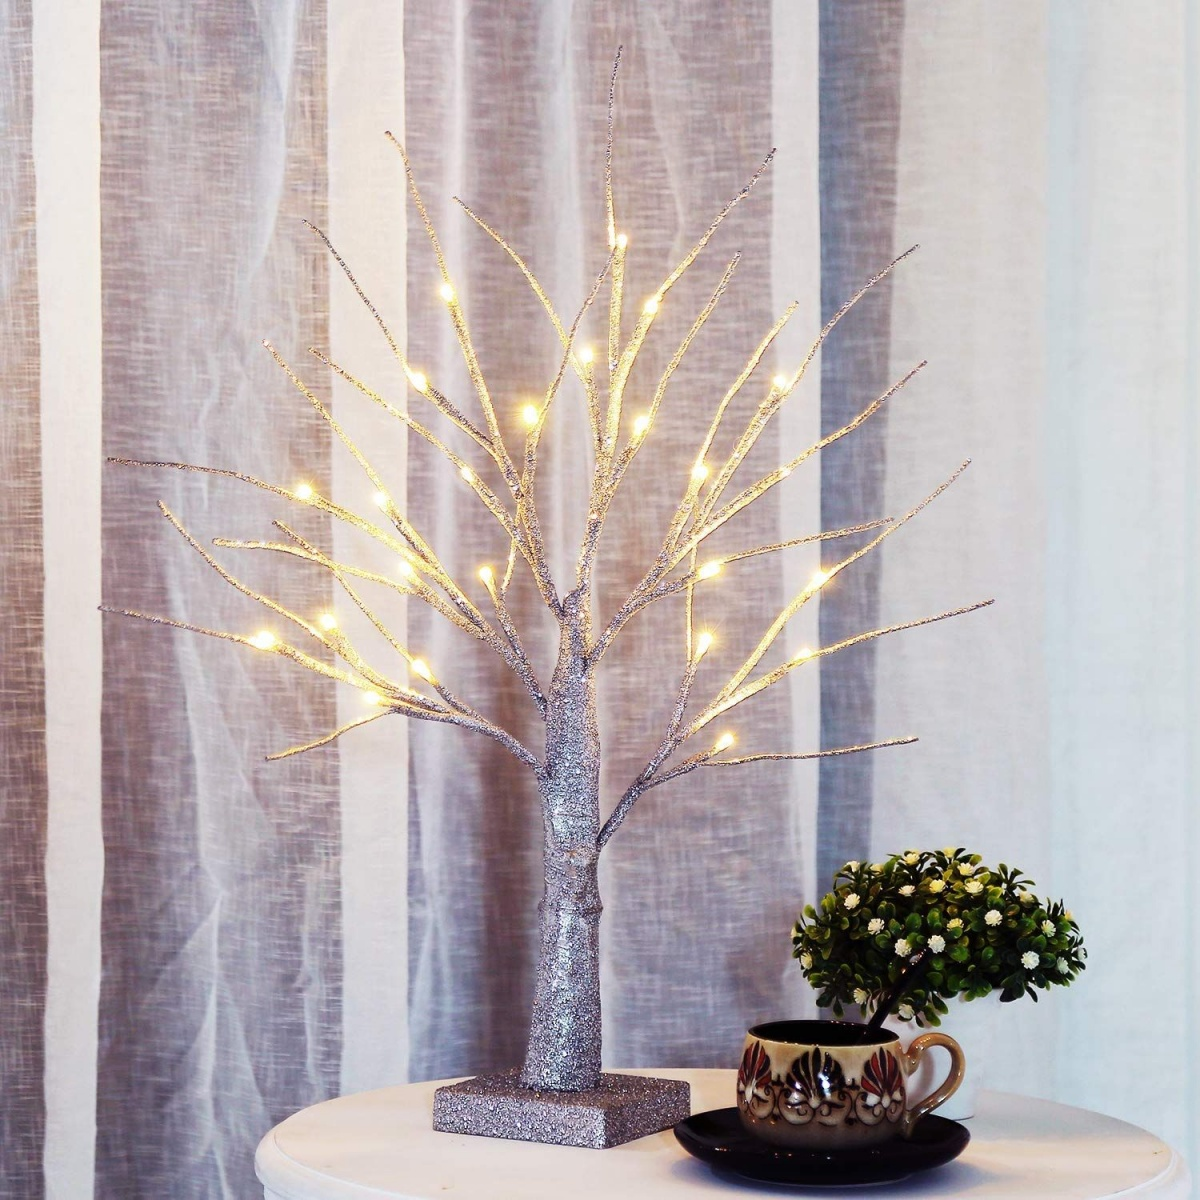 Artificial tree with lights 10 Fun Nightlights for Your Child's Room